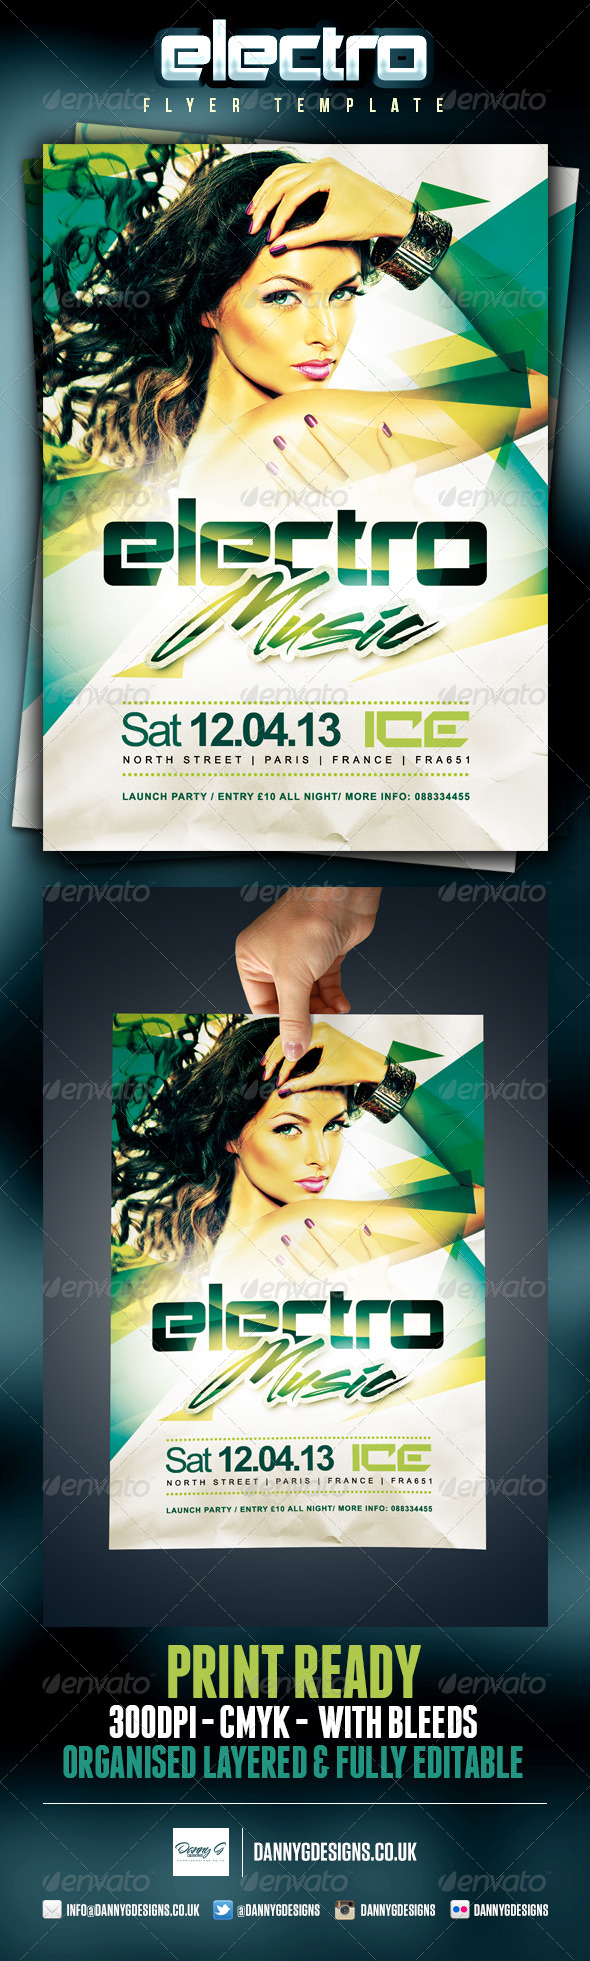 Electro Music Flyer Template - Clubs & Parties Events